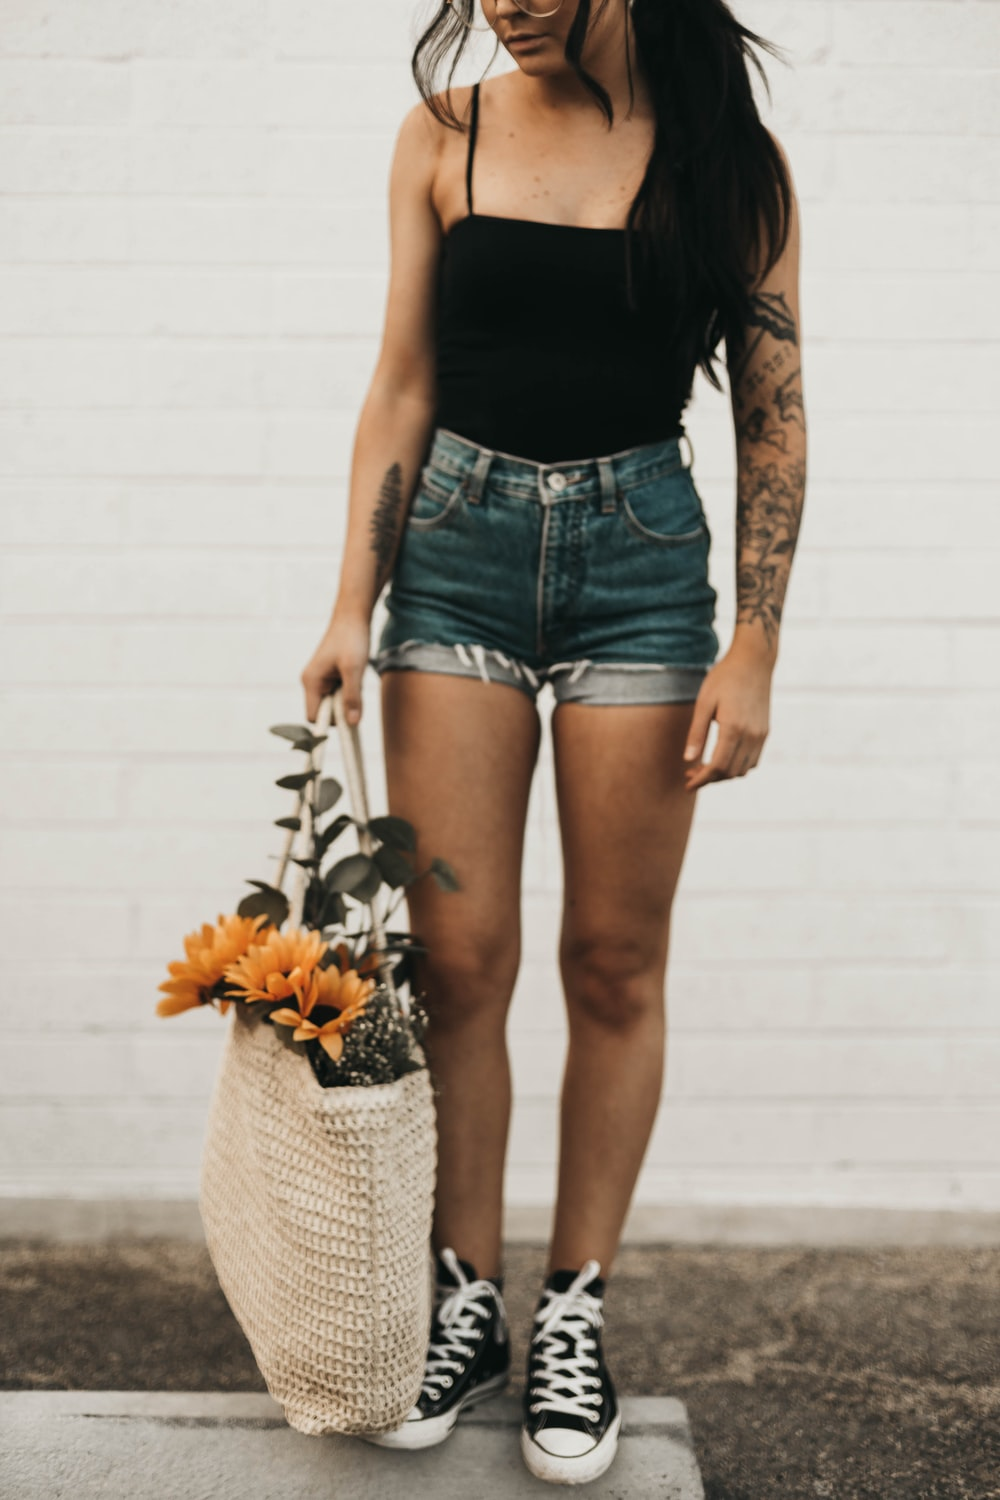 woman standing holding sunflowers